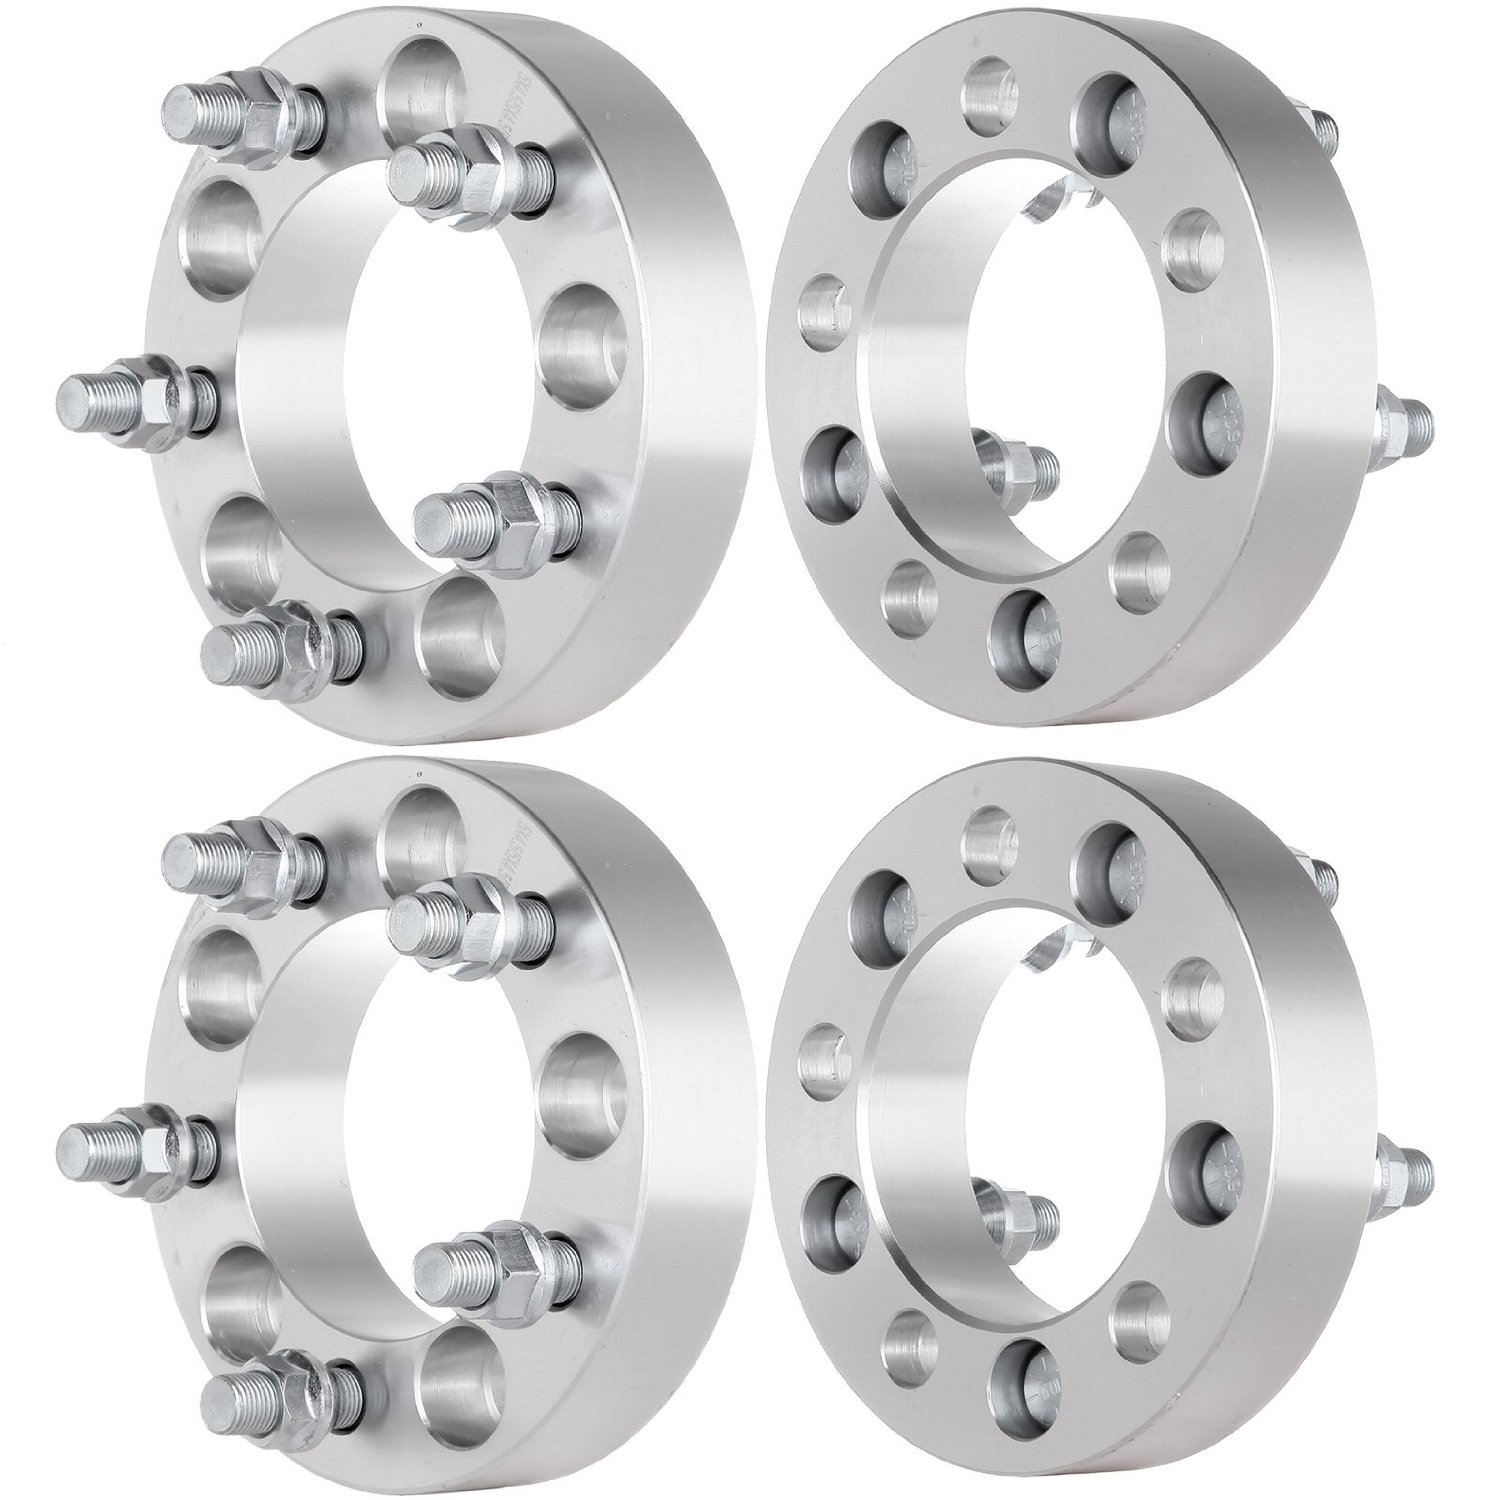 "Scitoo 4PCS 1.25"" or 32mm 5x4.5 wheel spacers For Jeep Wrangler Liberty Comanche Cherokee Grand Cherokee"